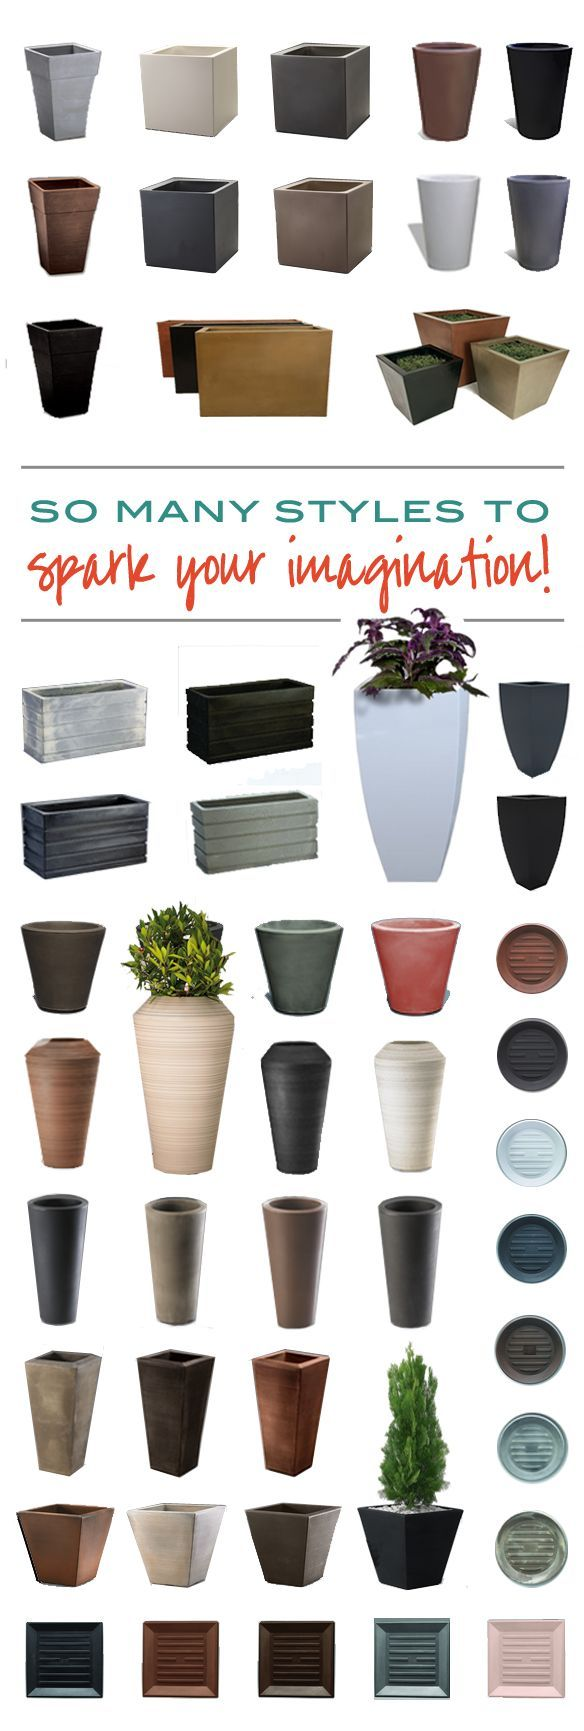 Don't get stuck in a design rut when you can discover the perfect planters and garden accessories to transform your indoor and outdoor space from boring to amazing. Find that perfect design element at urbilis.com/?utm_content=buffer408d9&utm_medium=social&utm_source=pinterest.com&utm_campaign=buffer…